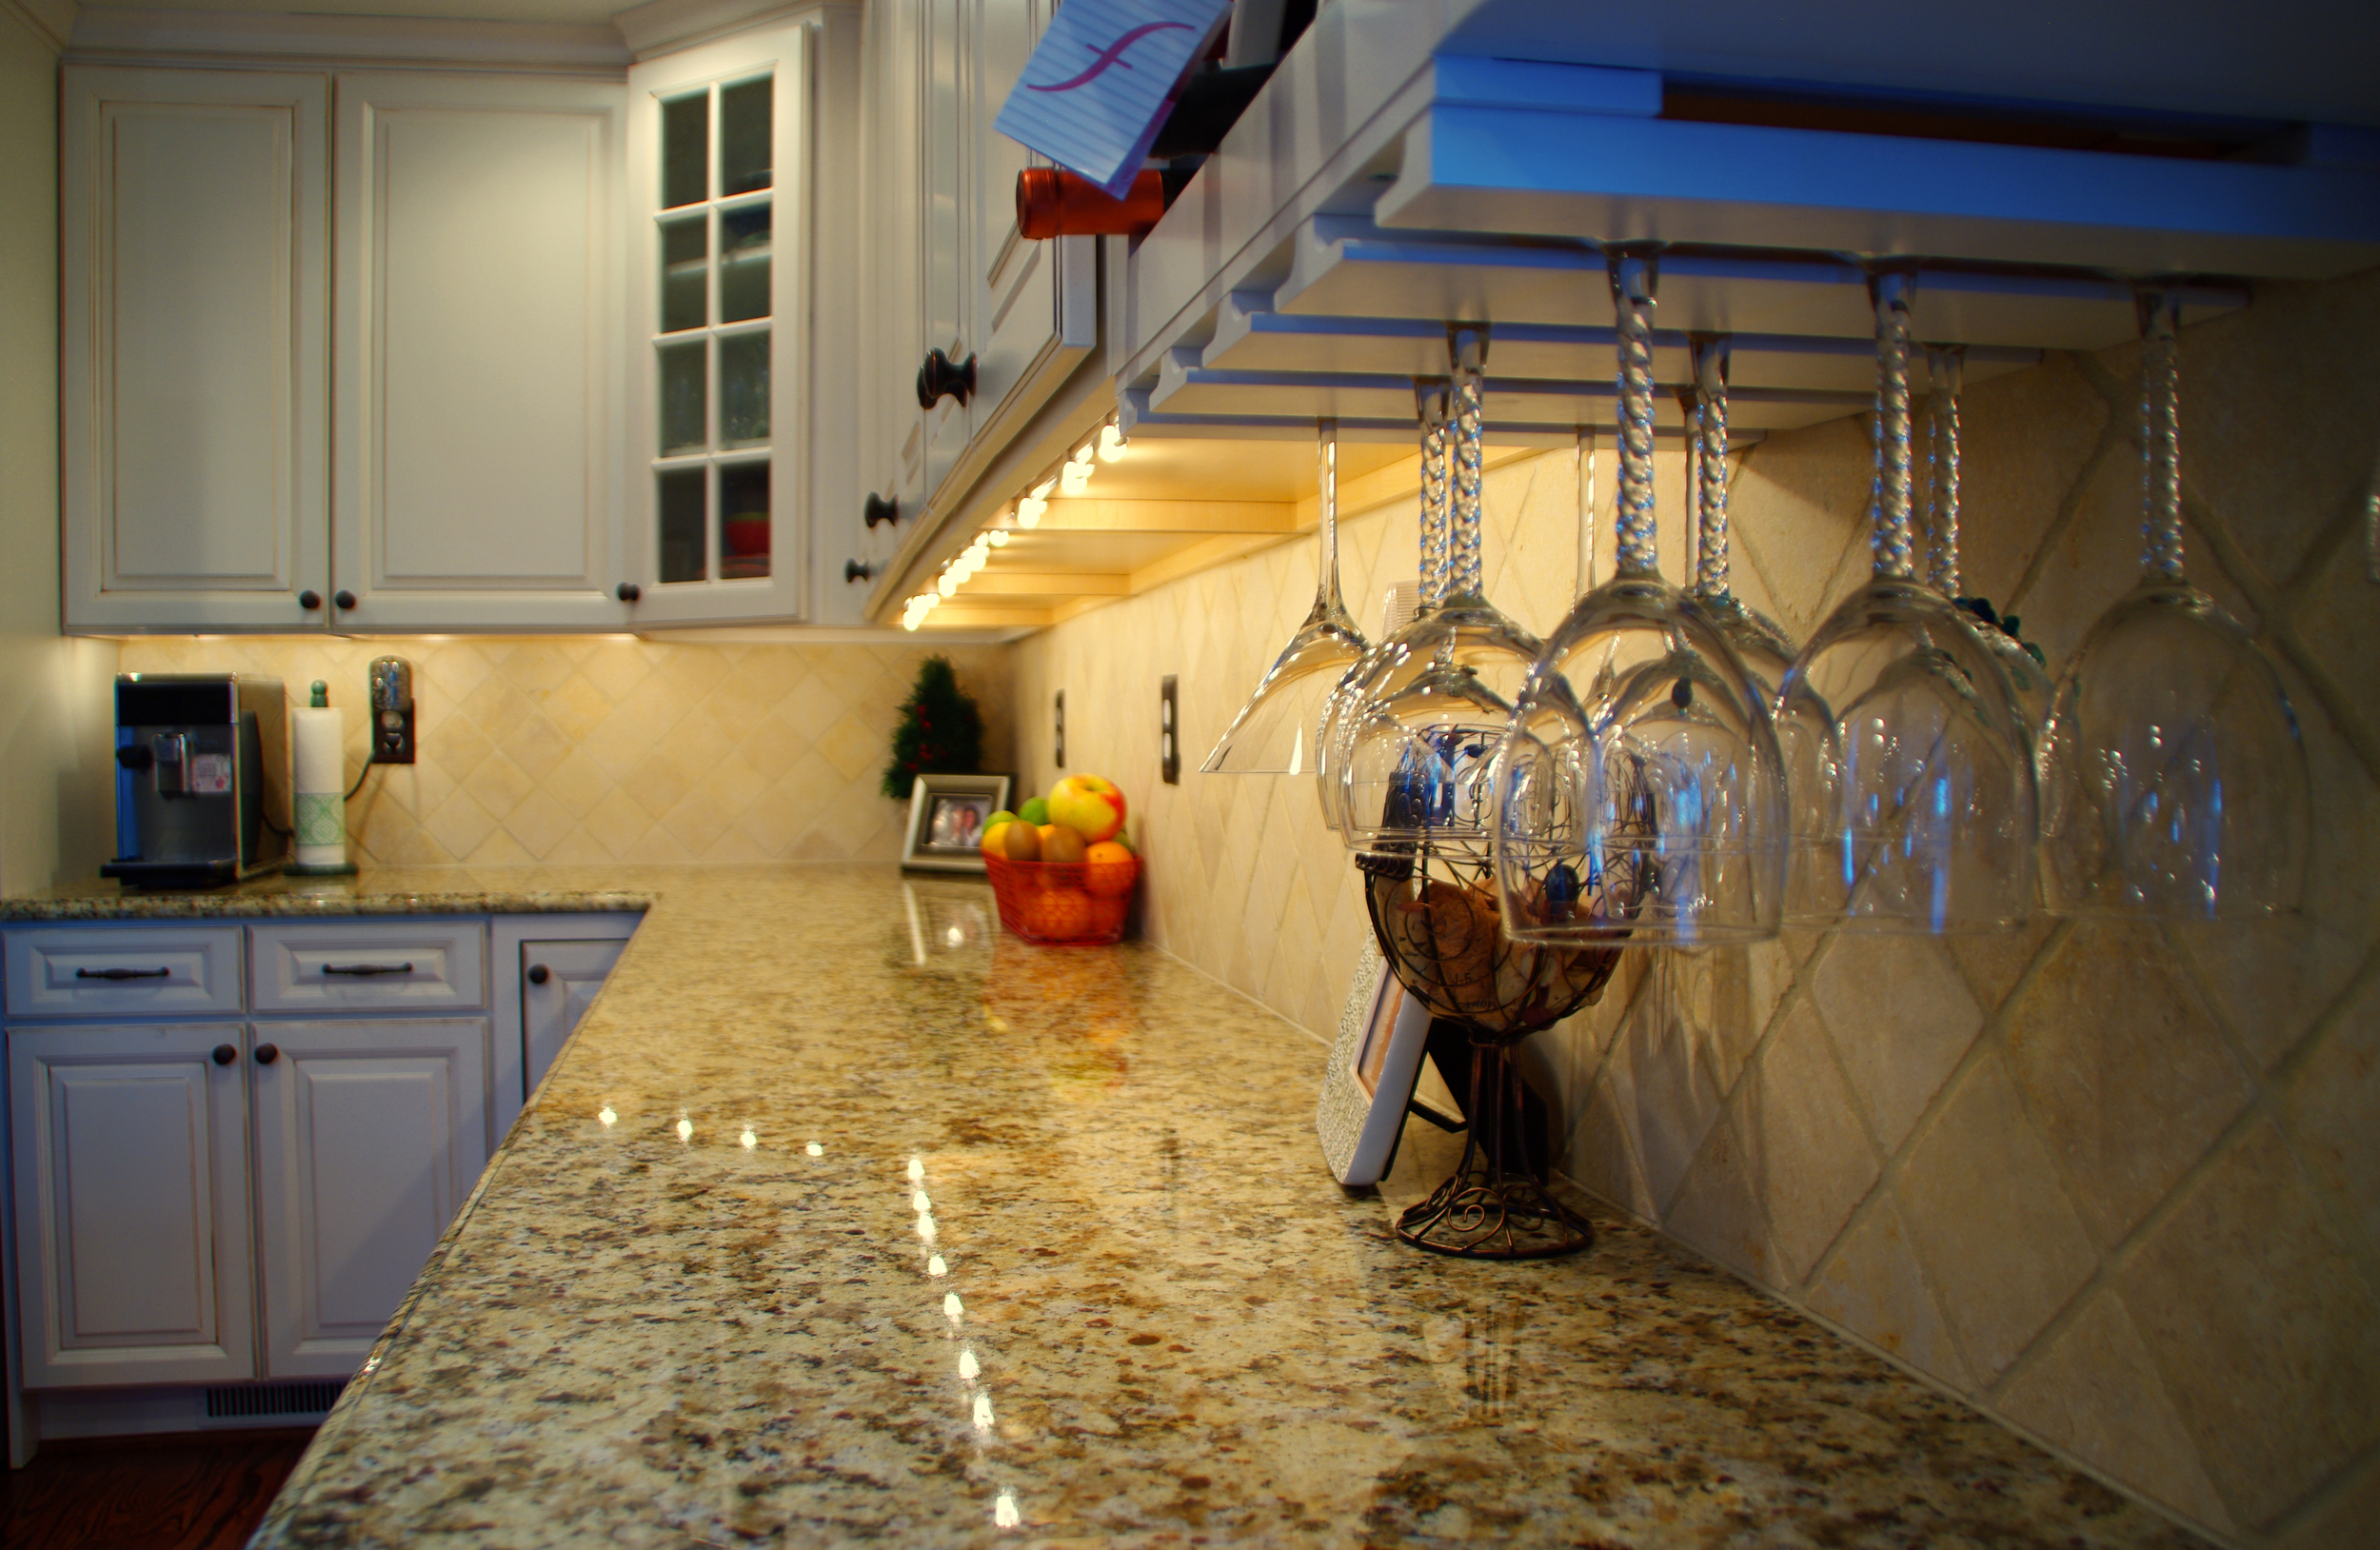 The customer went to our granite manufacturer and chose their exact piece of granite to be used in the kitchen.